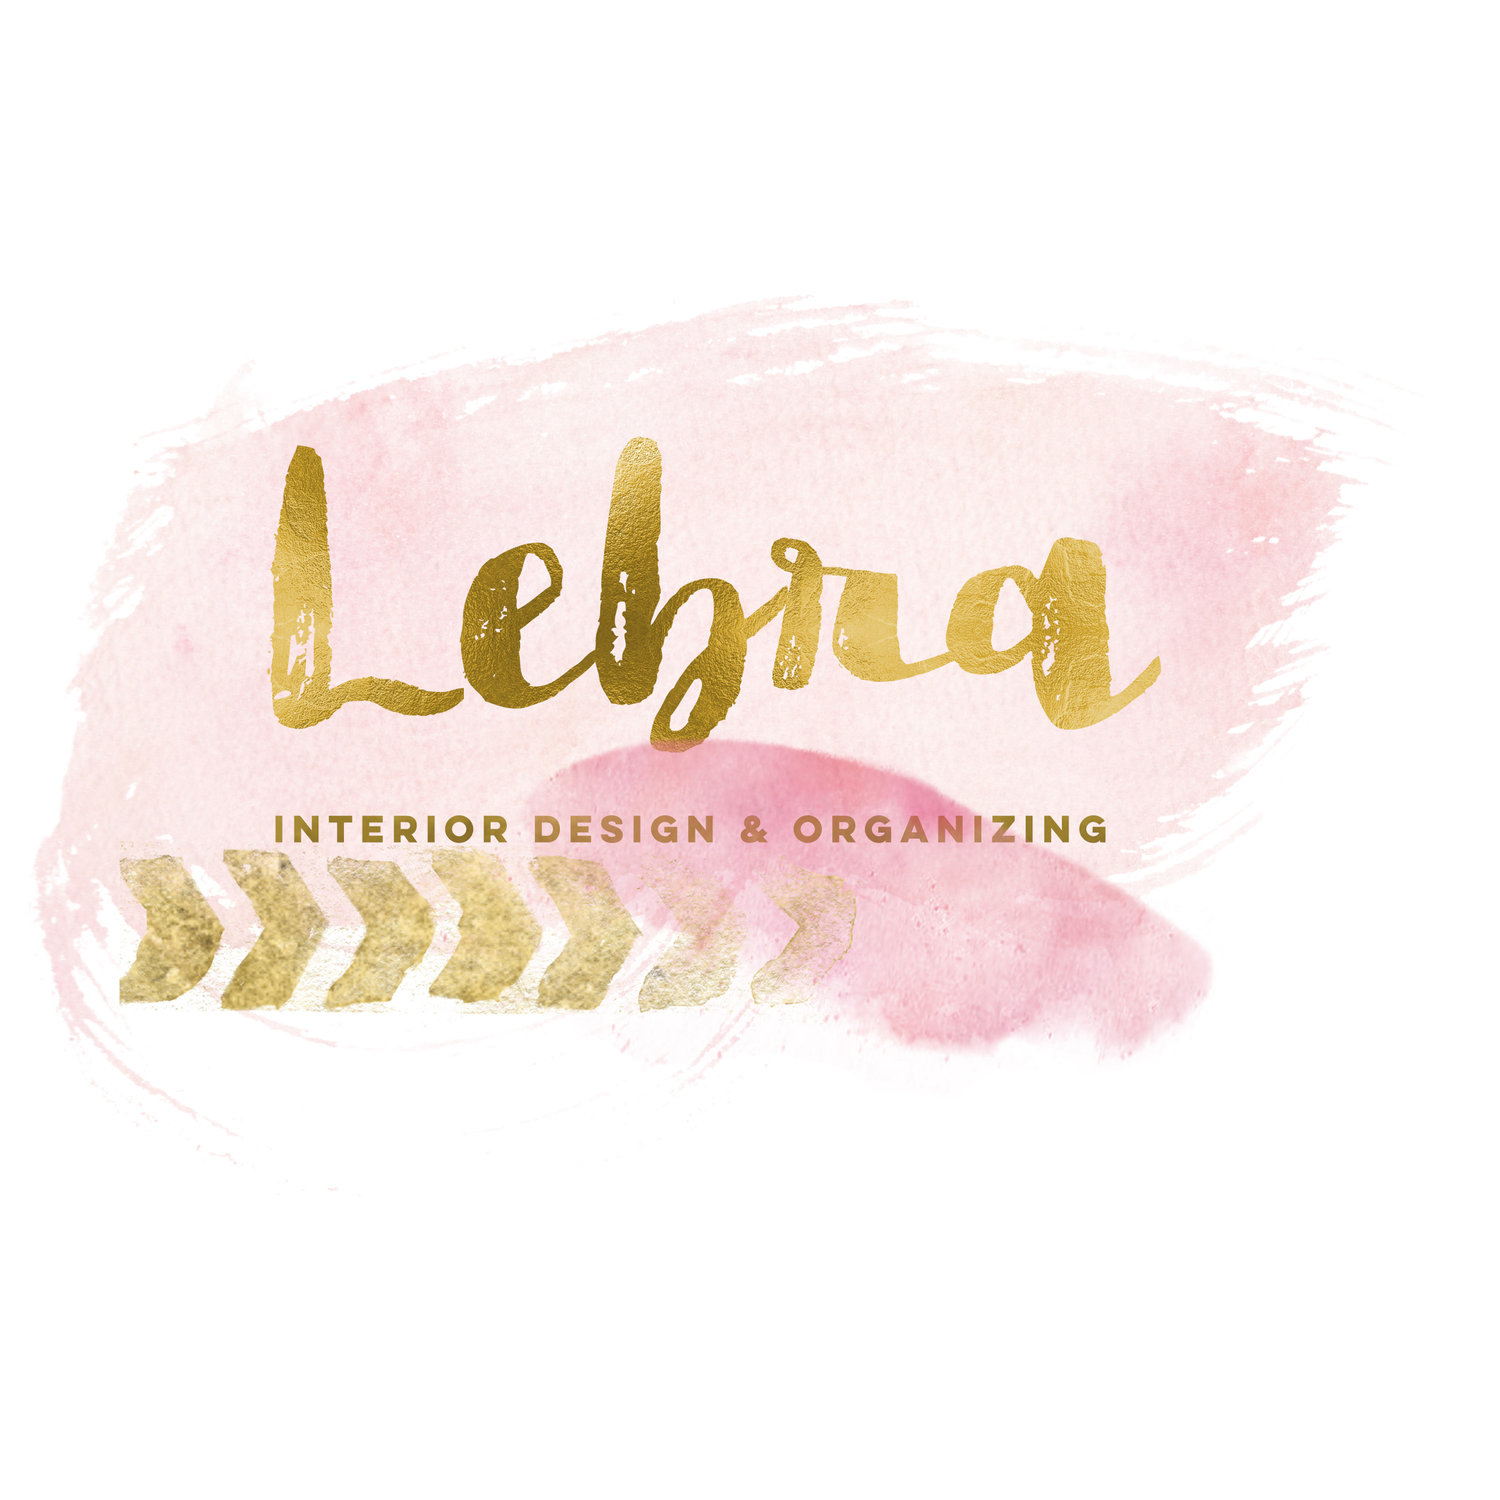 Lebra Interior Design & Organizing